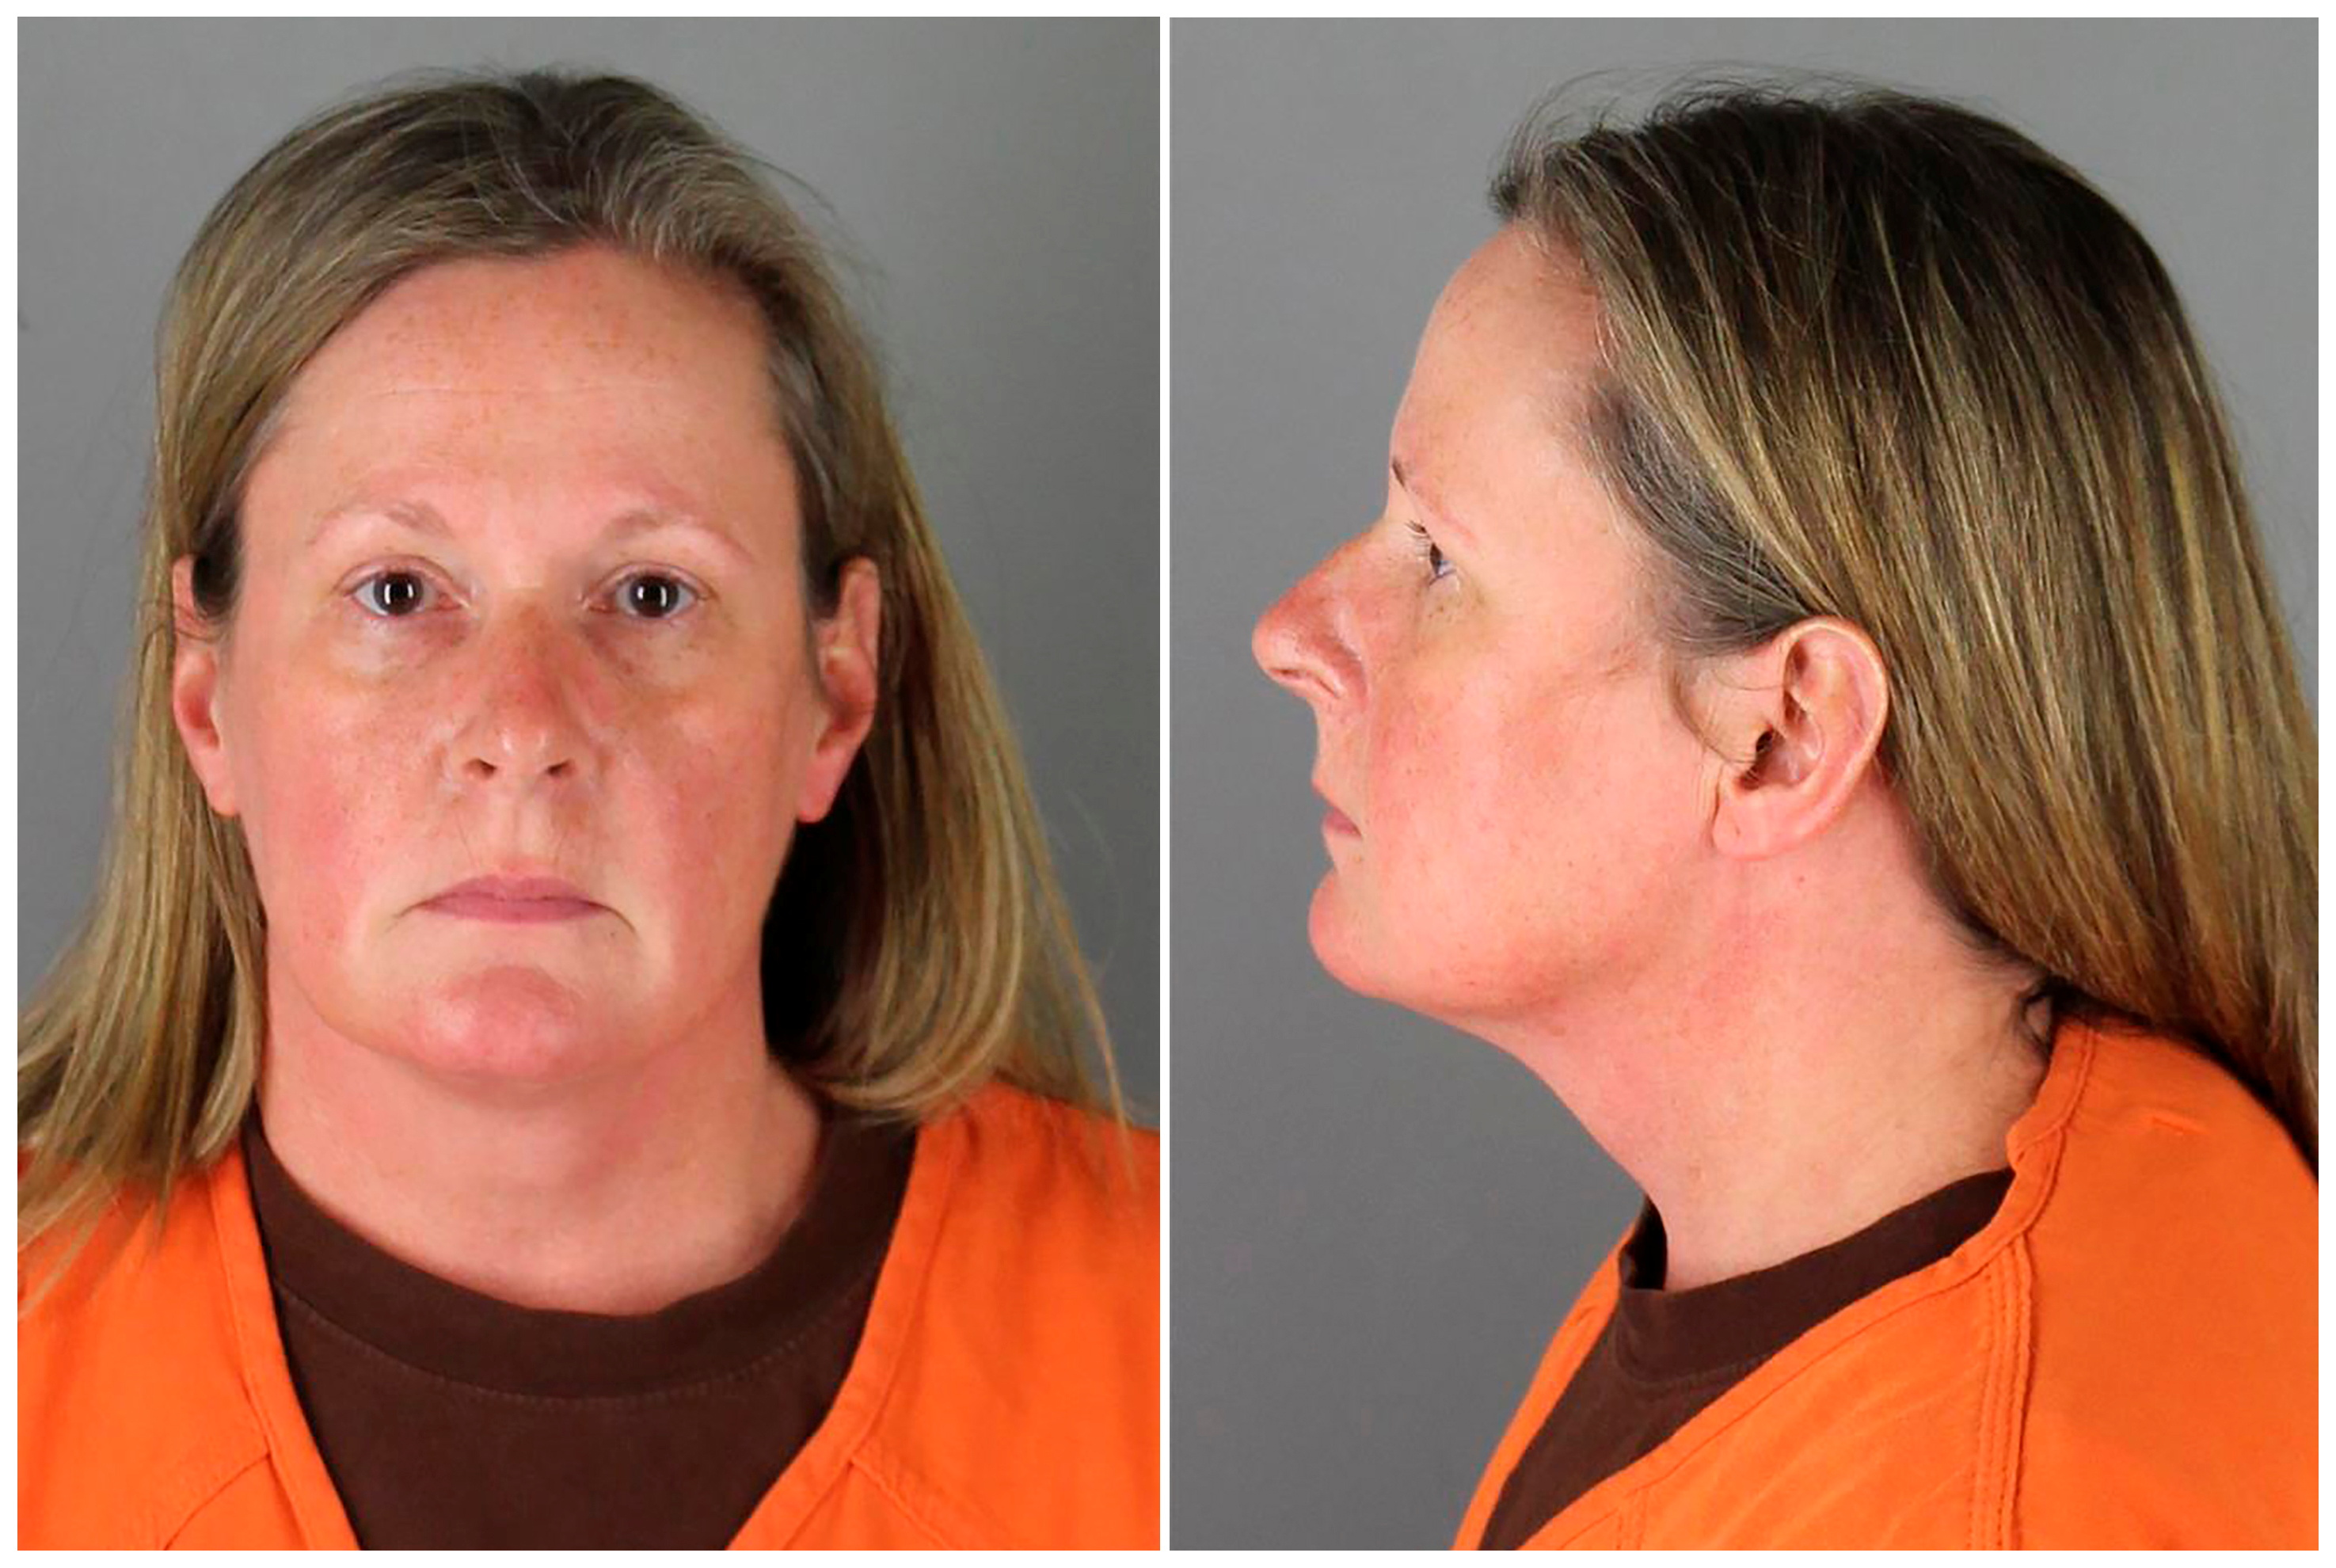 Kim Potter, a 26-year veteran who resigned from the Brooklyn Center police force, poses for a booking photograph at Hennepin County Jail for fatally shooting 20-year-old Daunte Wright during a traffic stop, in Minneapolis, Minnesota, U.S. April 14, 2021 in a combination of photographs.   Hennepin County Sheriff's Office/Handout via REUTERS.